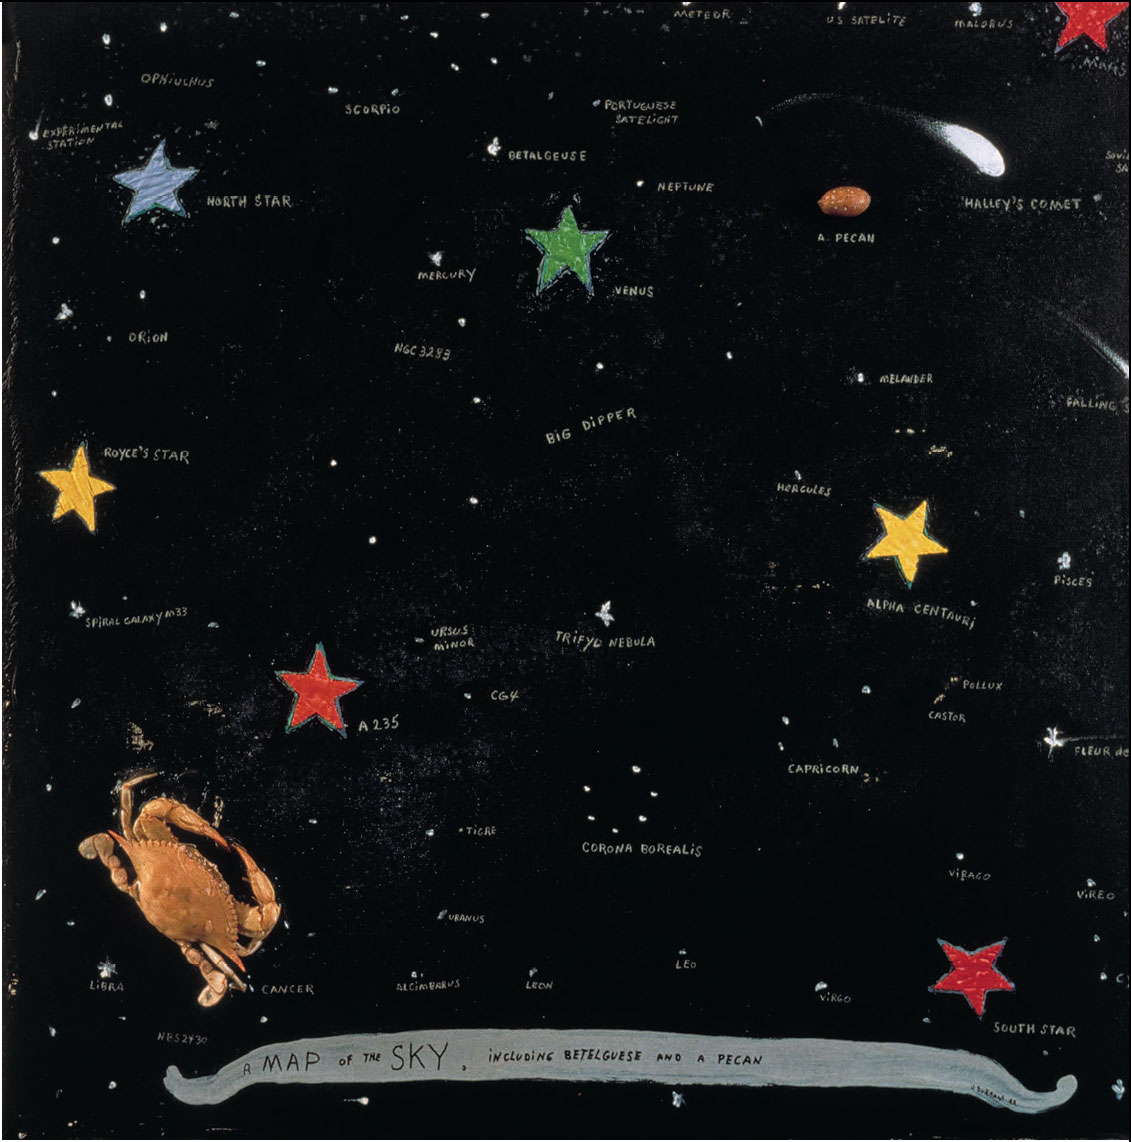 A Map of the Sky including Betelguese and a Pecan (1993) by Jimmie Durham, as reproduced in Universe: Exploring the Astronomical World